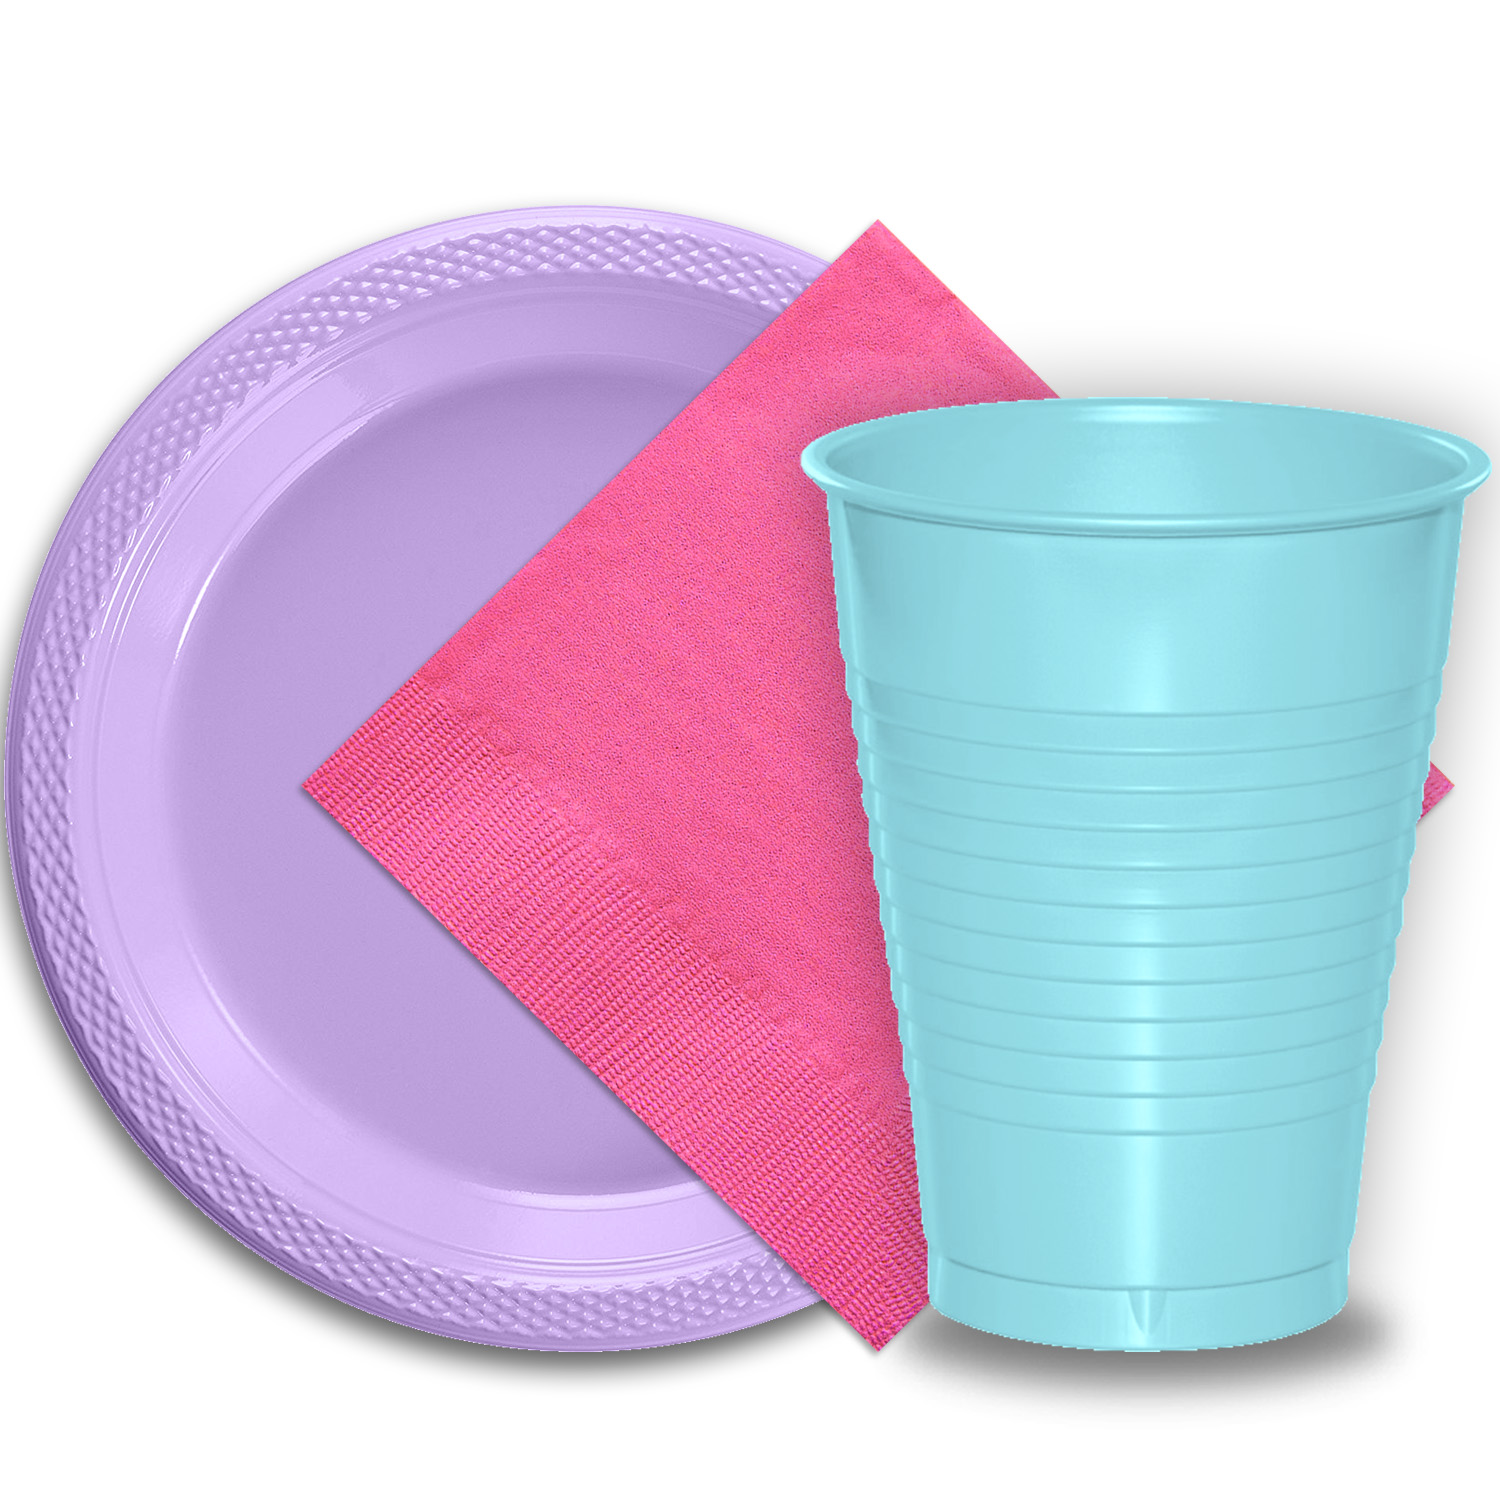 "50 Lavender Plastic Plates (9""), 50 Light Blue Plastic Cups (12 oz.), and 50 Hot Pink Paper Napkins, Dazzelling Colored Disposable Party Supplies Tableware Set for Fifty Guests."